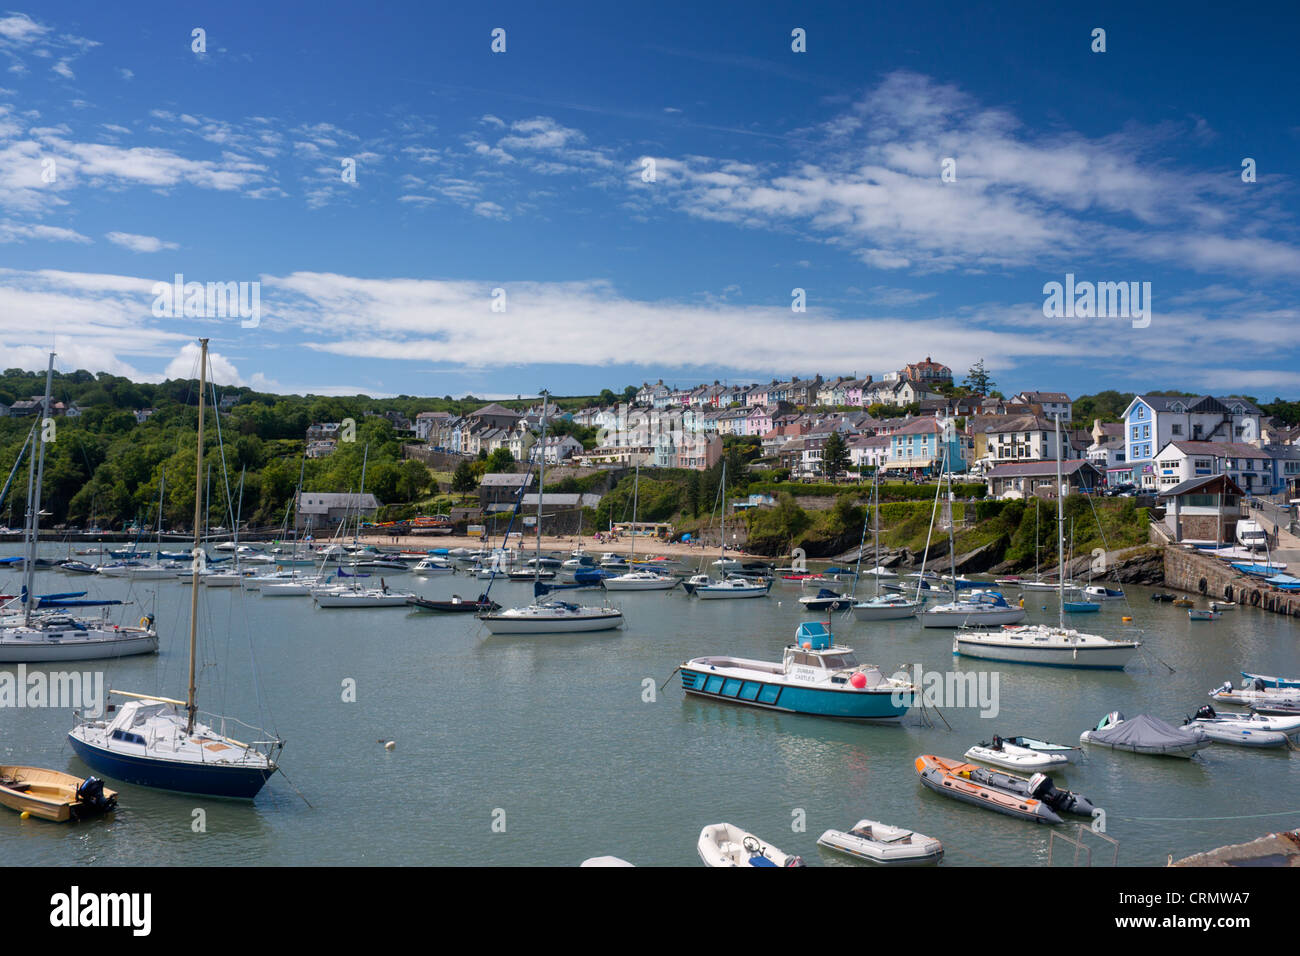 New Quay harbour and beach at high tide with boats and colourful terraced houses on hill behind Ceredigion Mid Wales - Stock Image